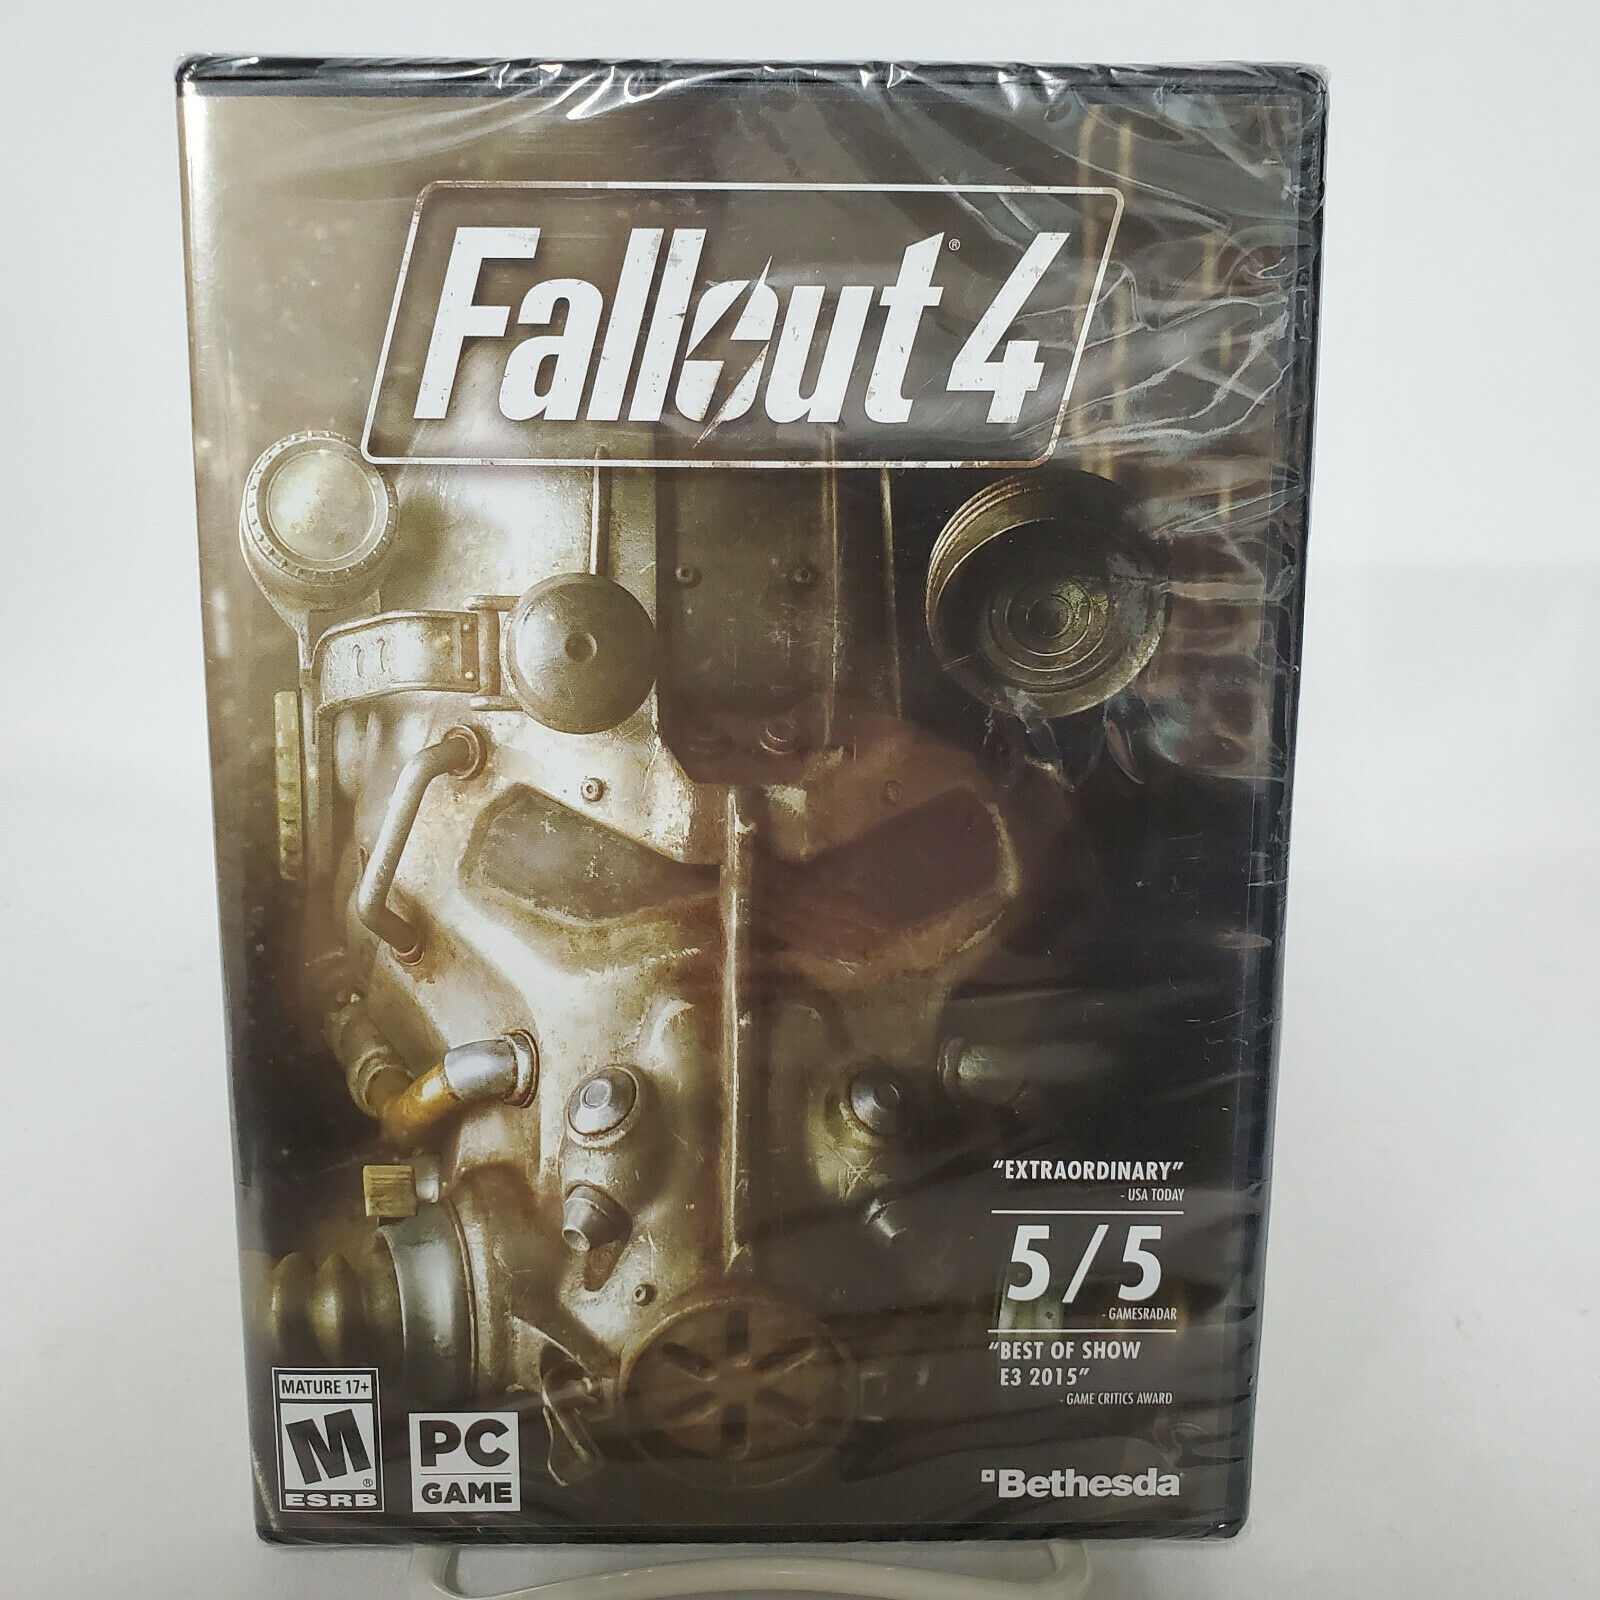 Computer Games - Fallout 4 FOR PC Computer Game NEW Sealed Actual Game, Not a Key